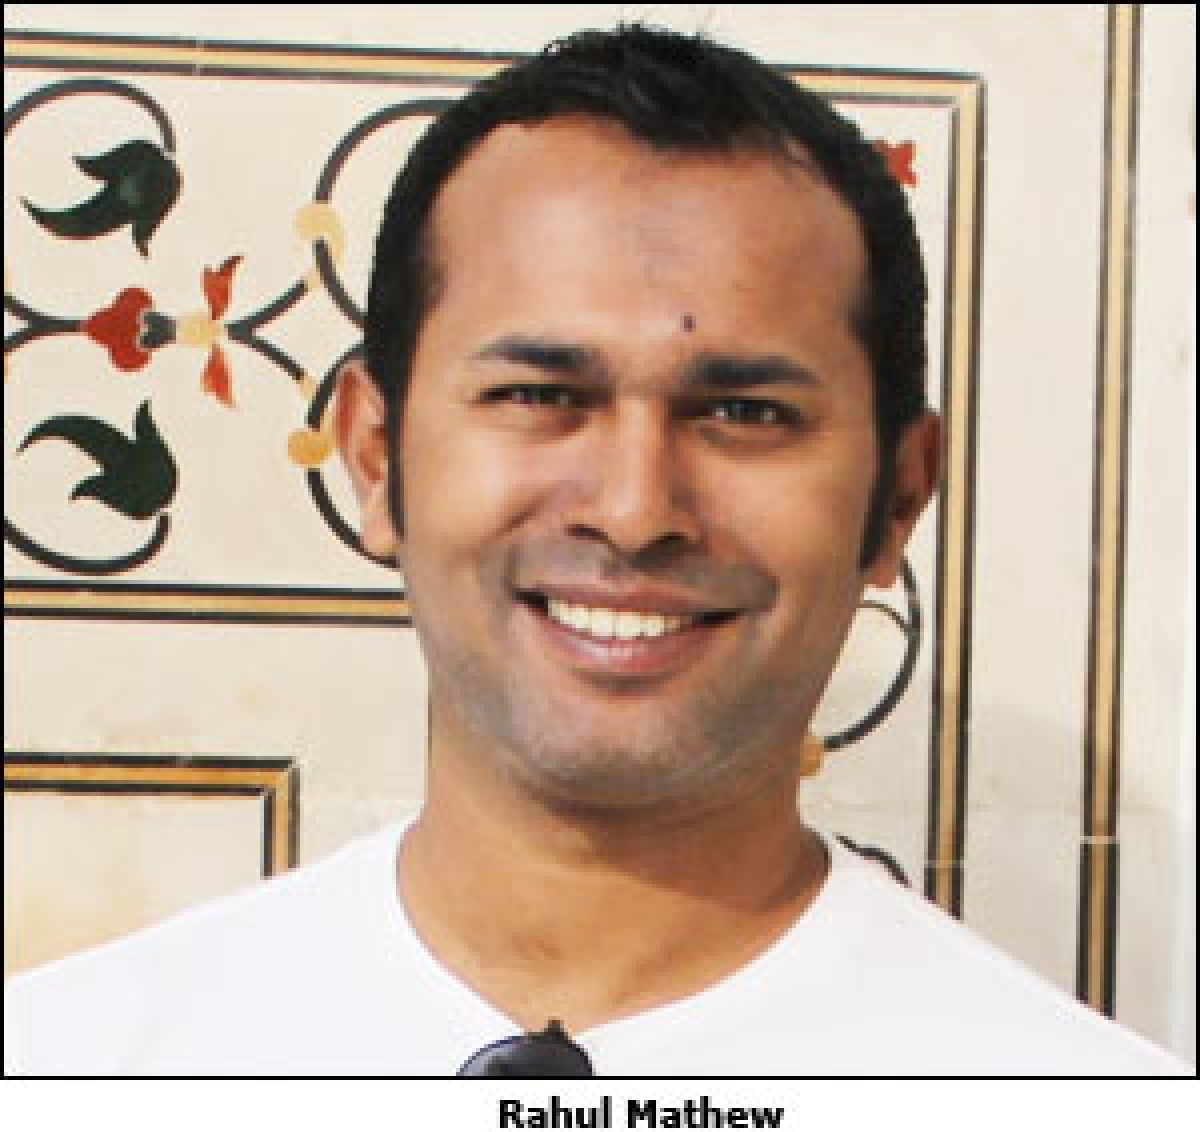 DDB Mudra West appoints Keegan Pinto as Group Creative Director